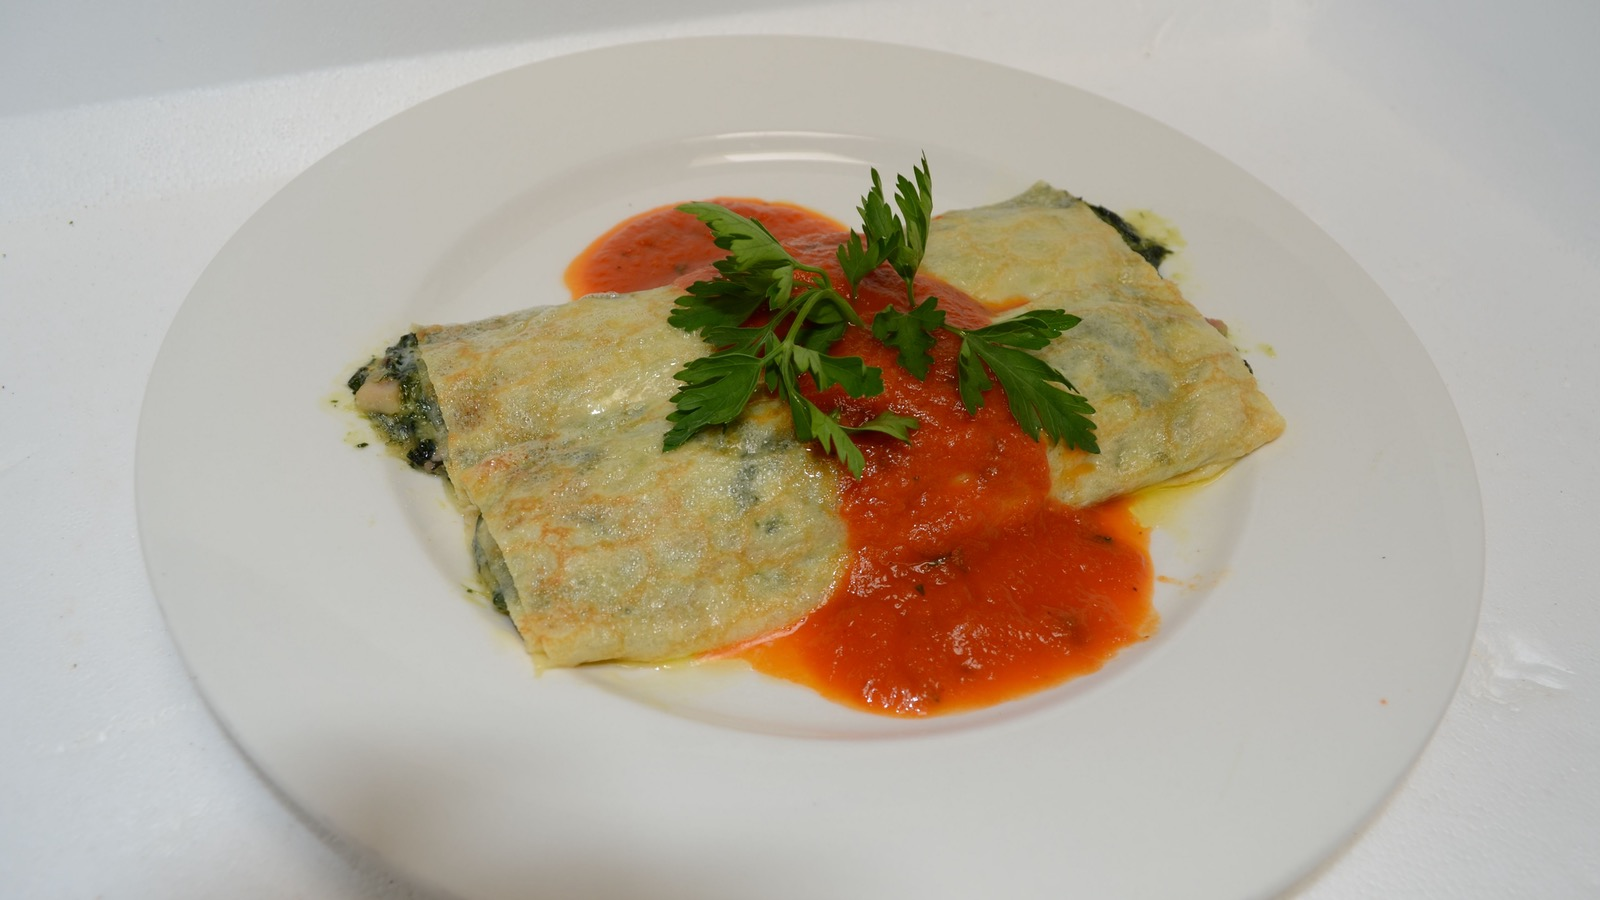 The Kookaburra's famous spinach crepes